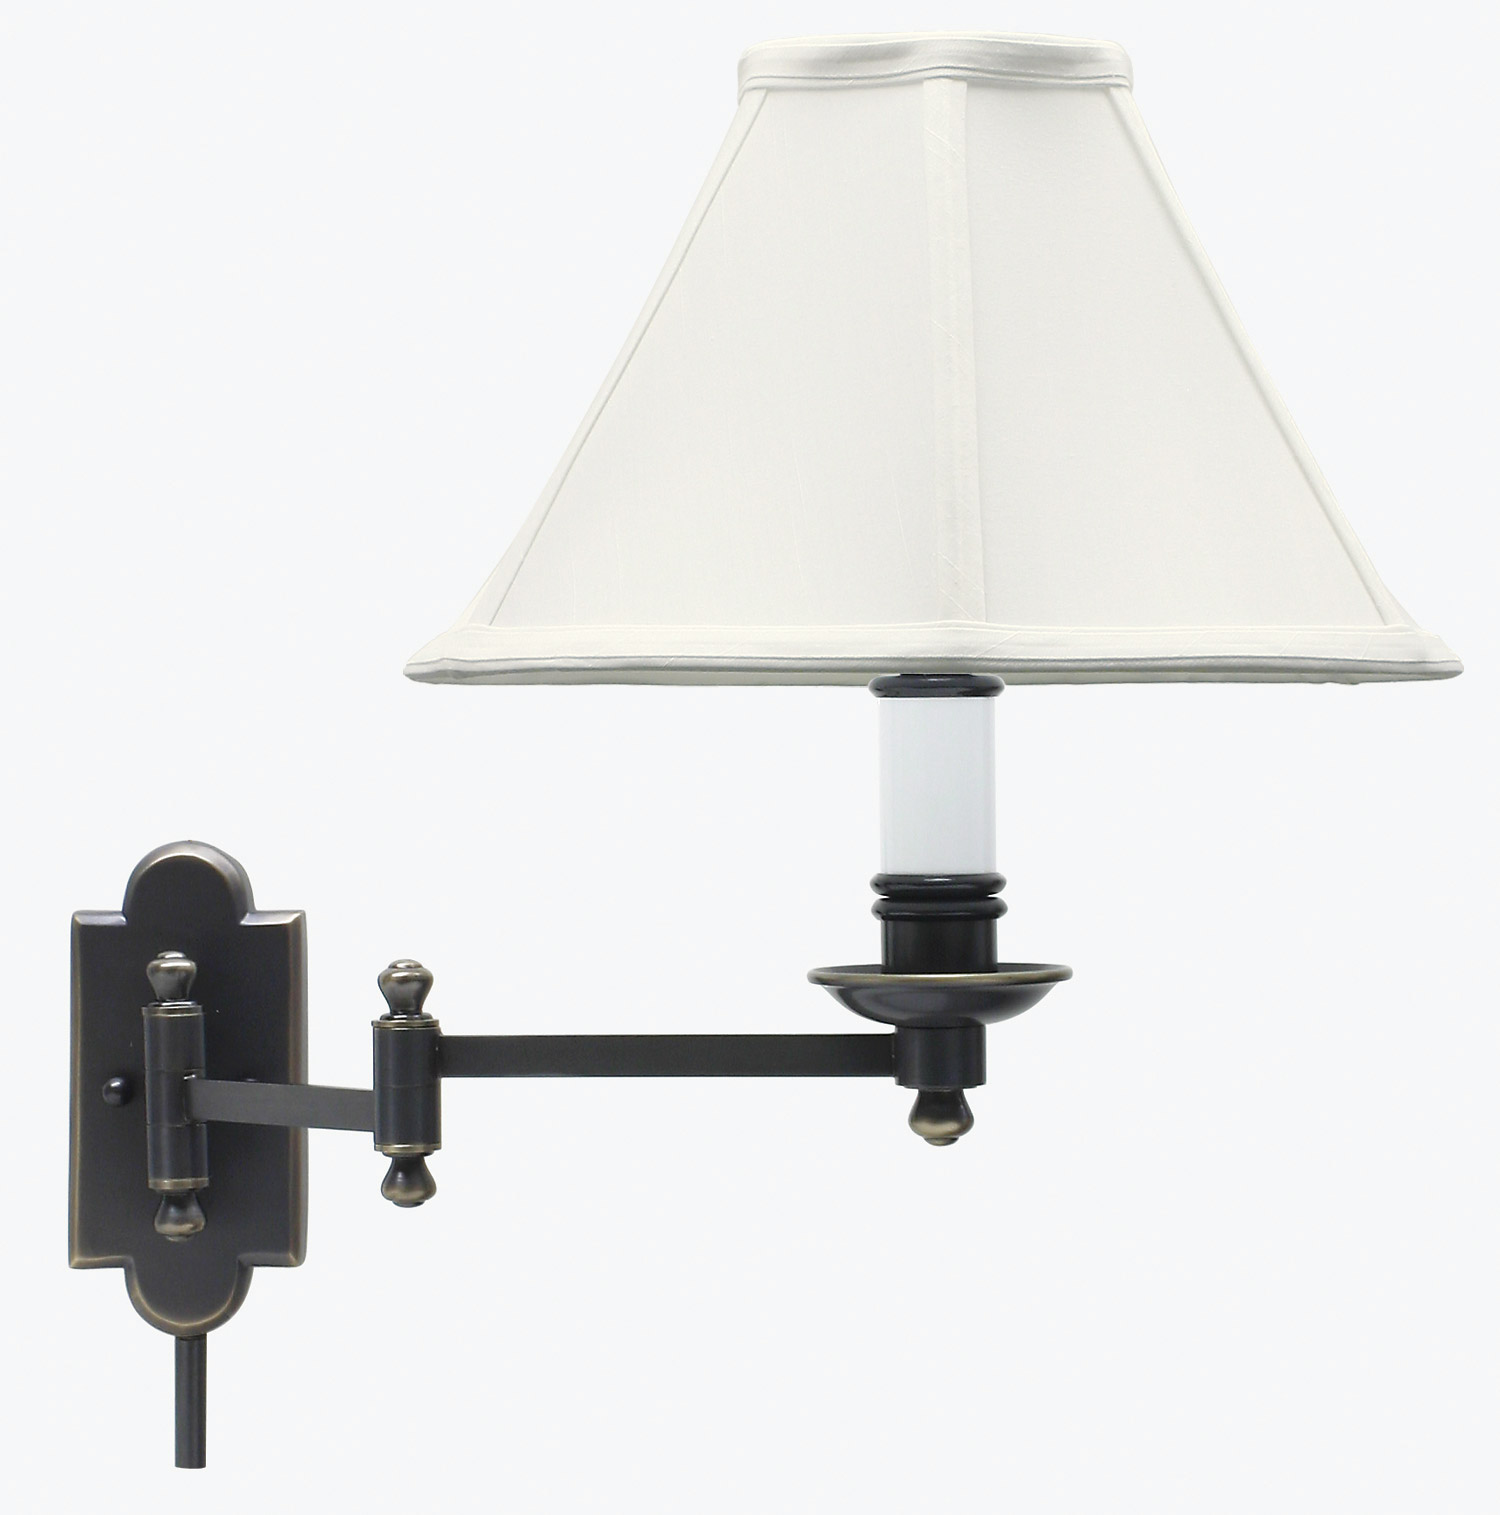 house of troy cl225 ob club swing arm wall lamp. Black Bedroom Furniture Sets. Home Design Ideas